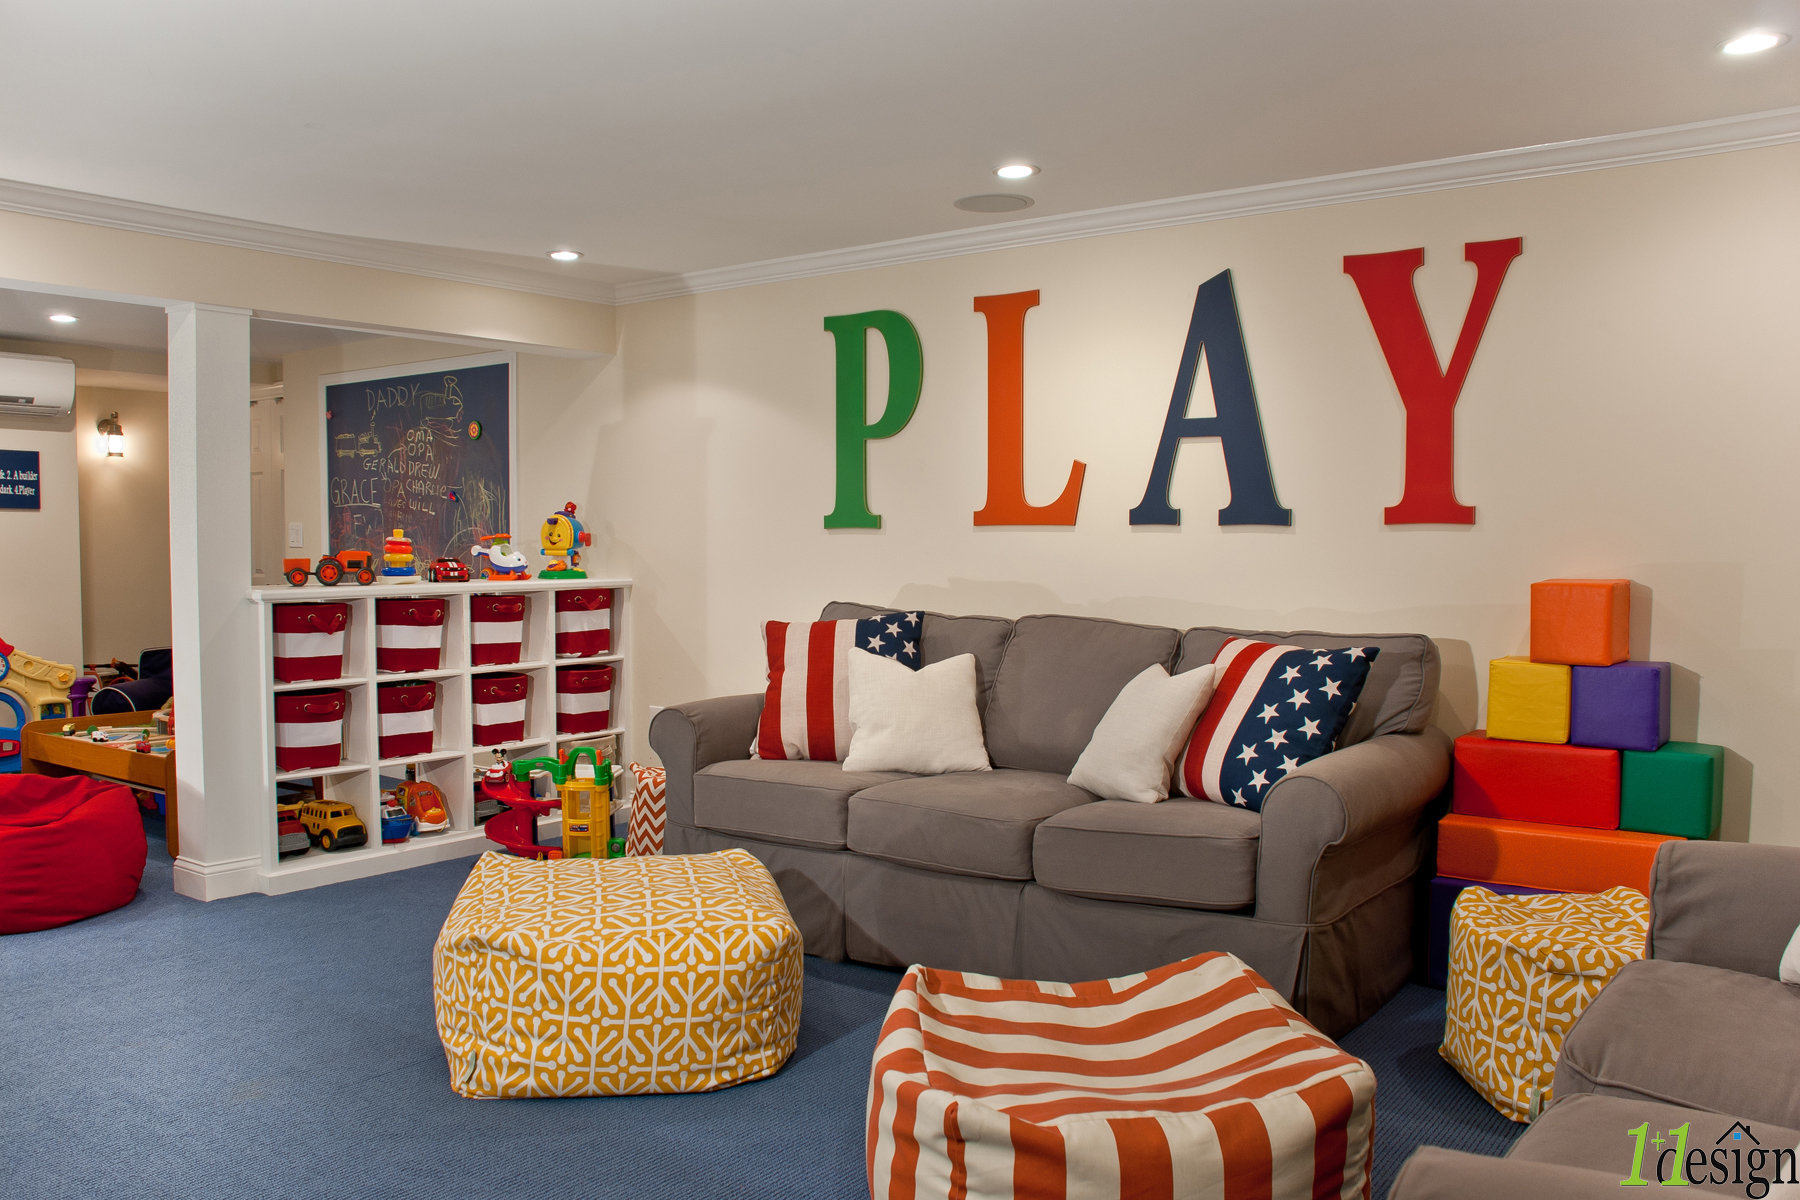 1plus1 designhinghambaskets storageblue carpetcubbieskids caveplay roomtoys & WEB-MCELANEY PLAYROOM-01.jpg | A Hingham based Residential ...